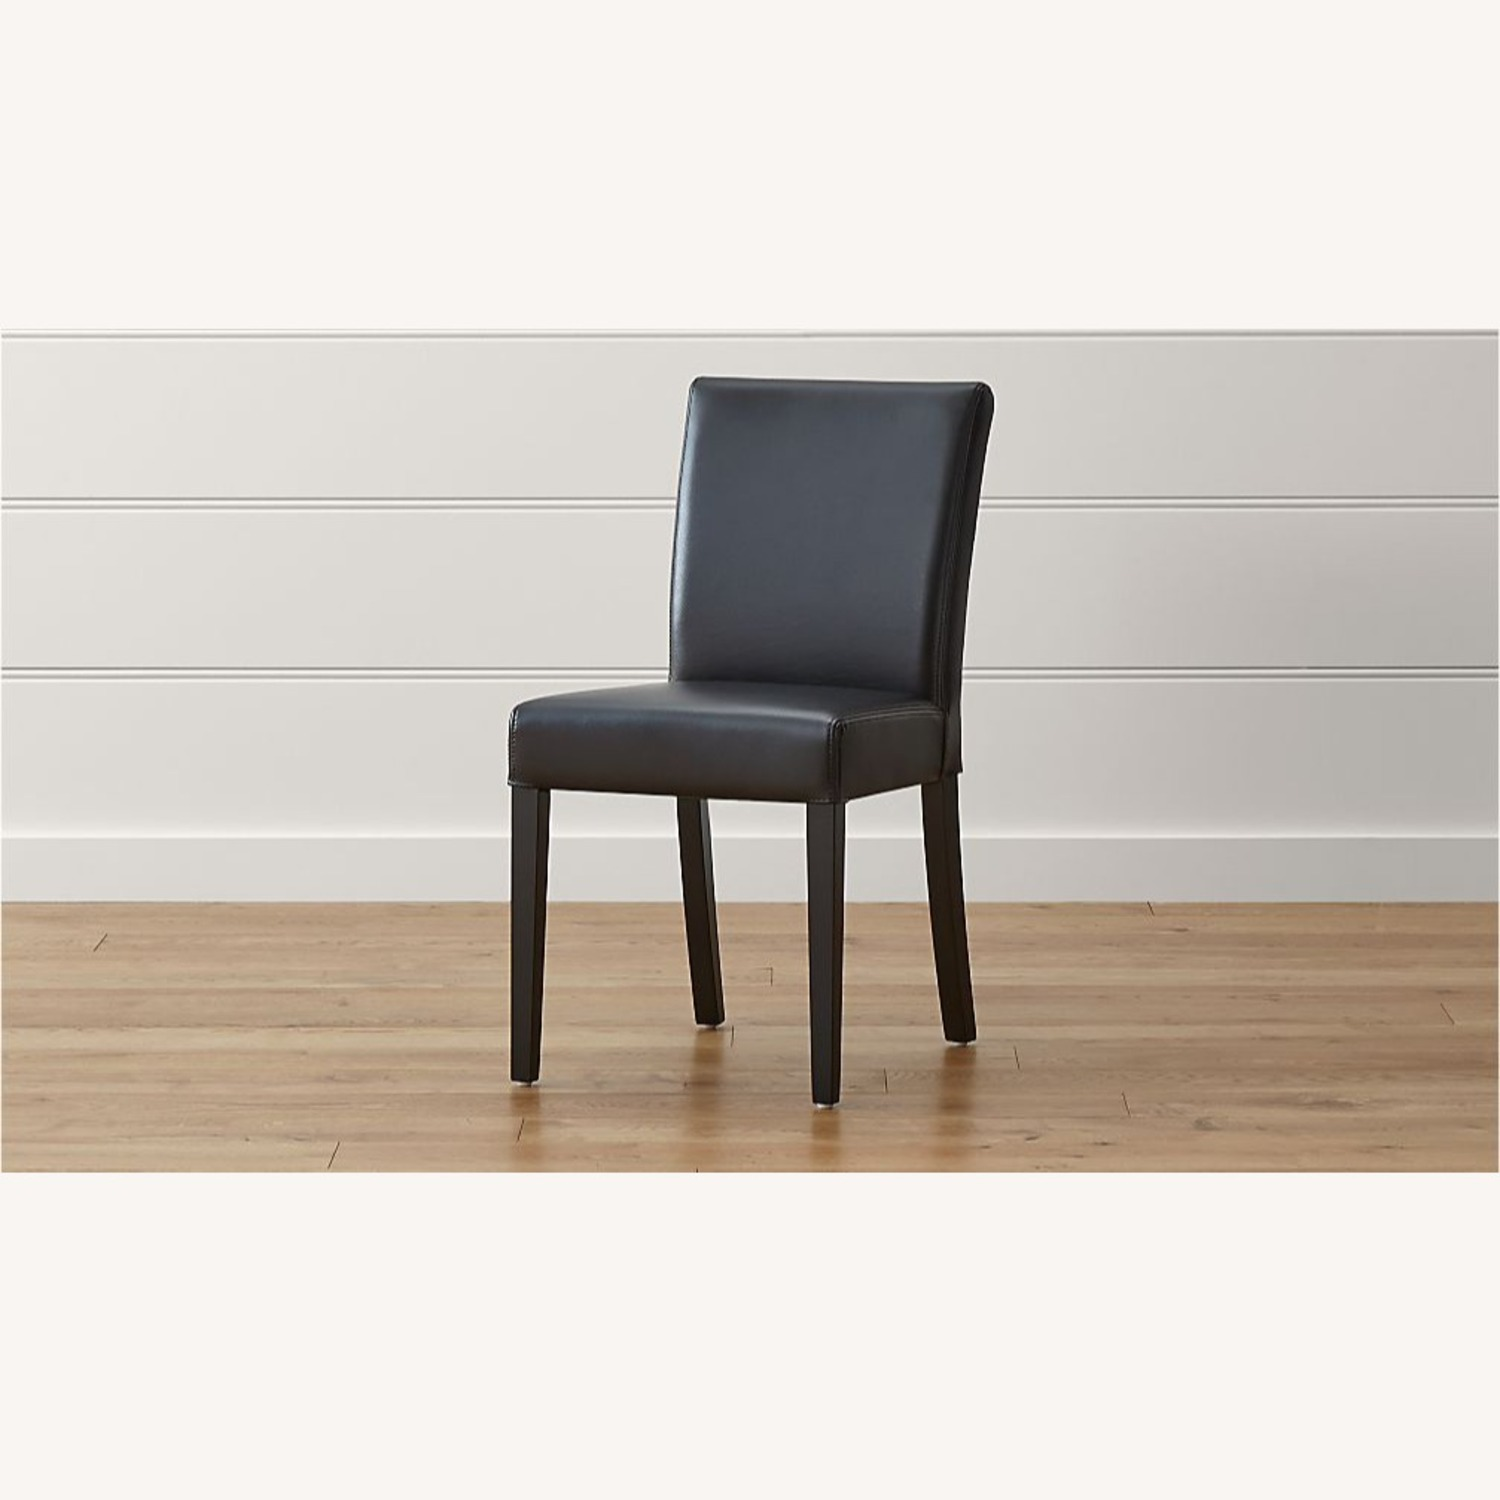 Crate & Barrel Lowe Leather Dining Chair - image-2